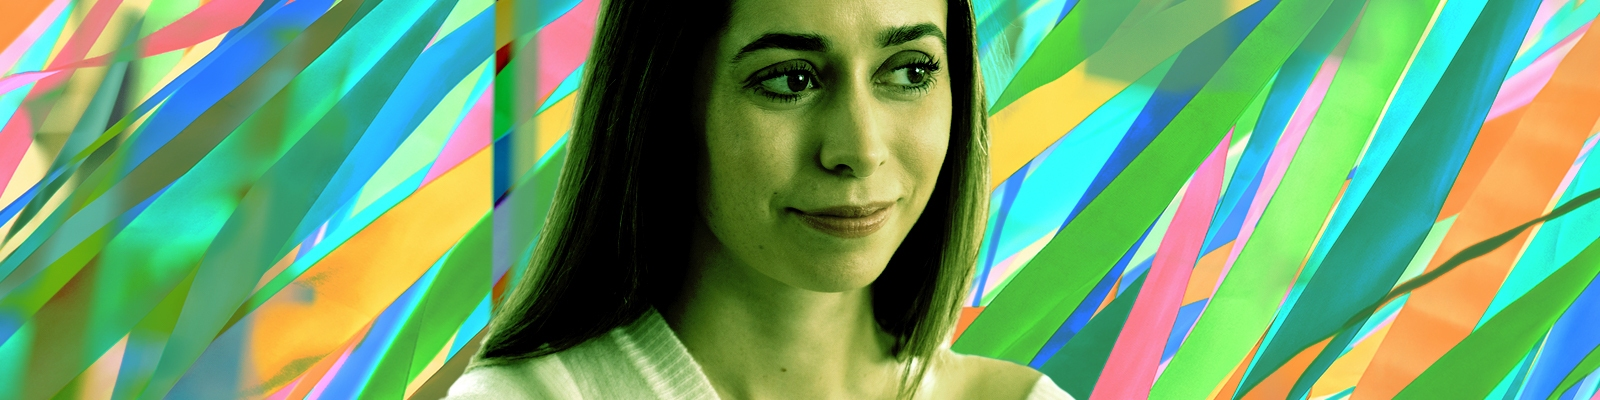 A Delightful Conversation With Cristin Milioti On 'Made For Love' And Her 'Very Hateful Relationship' With Social Media/Big Tech